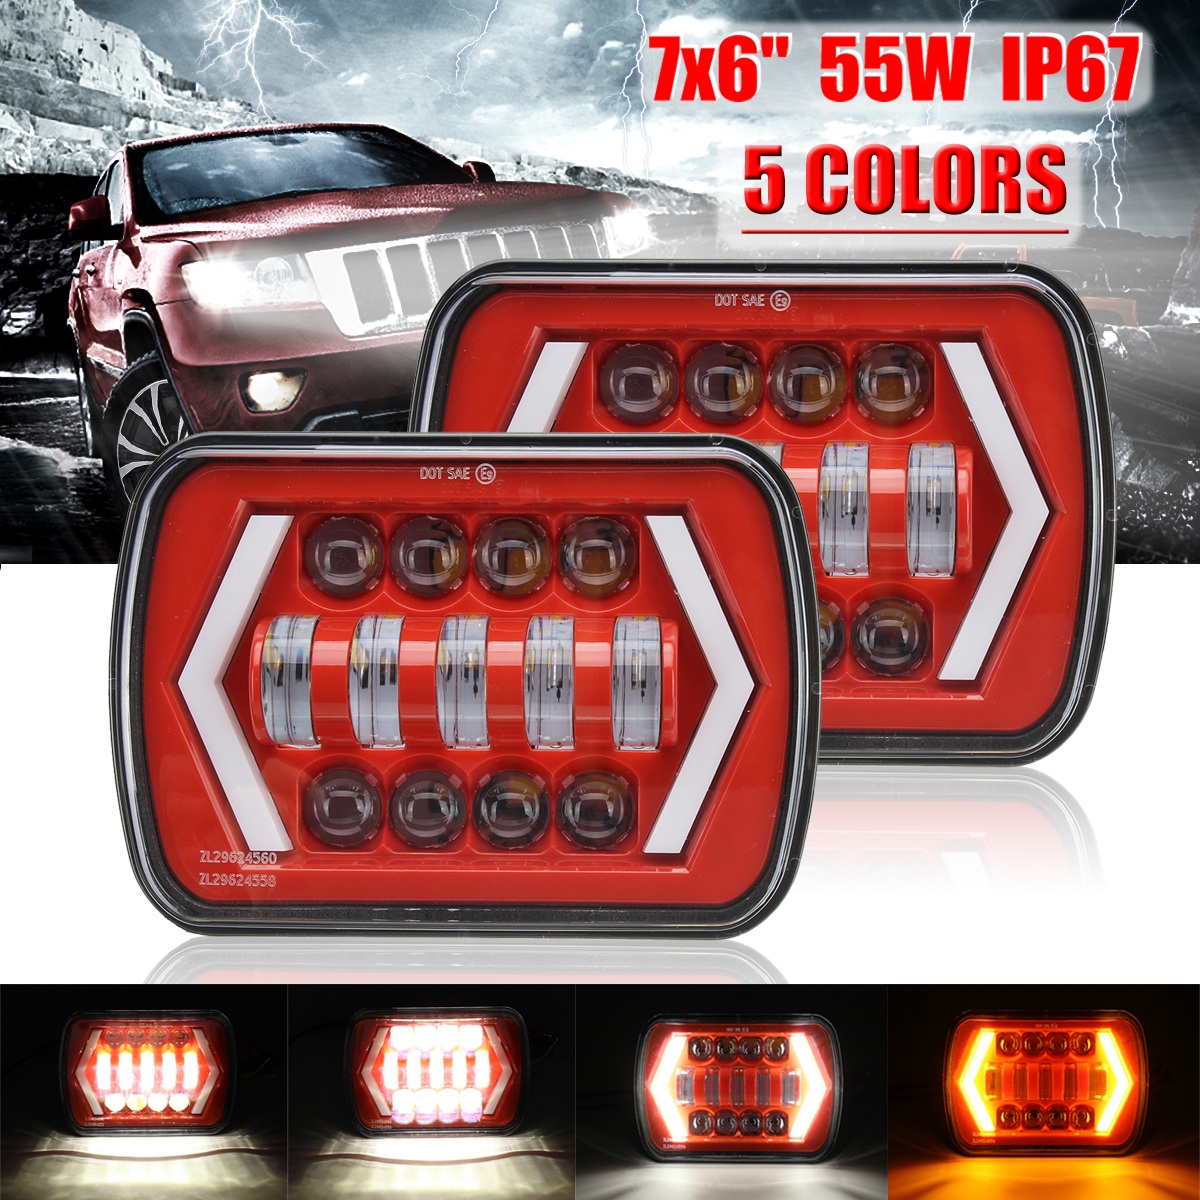 2Pcs Red DOT 55W 7x6'' 5X7 LED Projector Headlight Hi-Lo Beam Halo For Jeep Cherokee